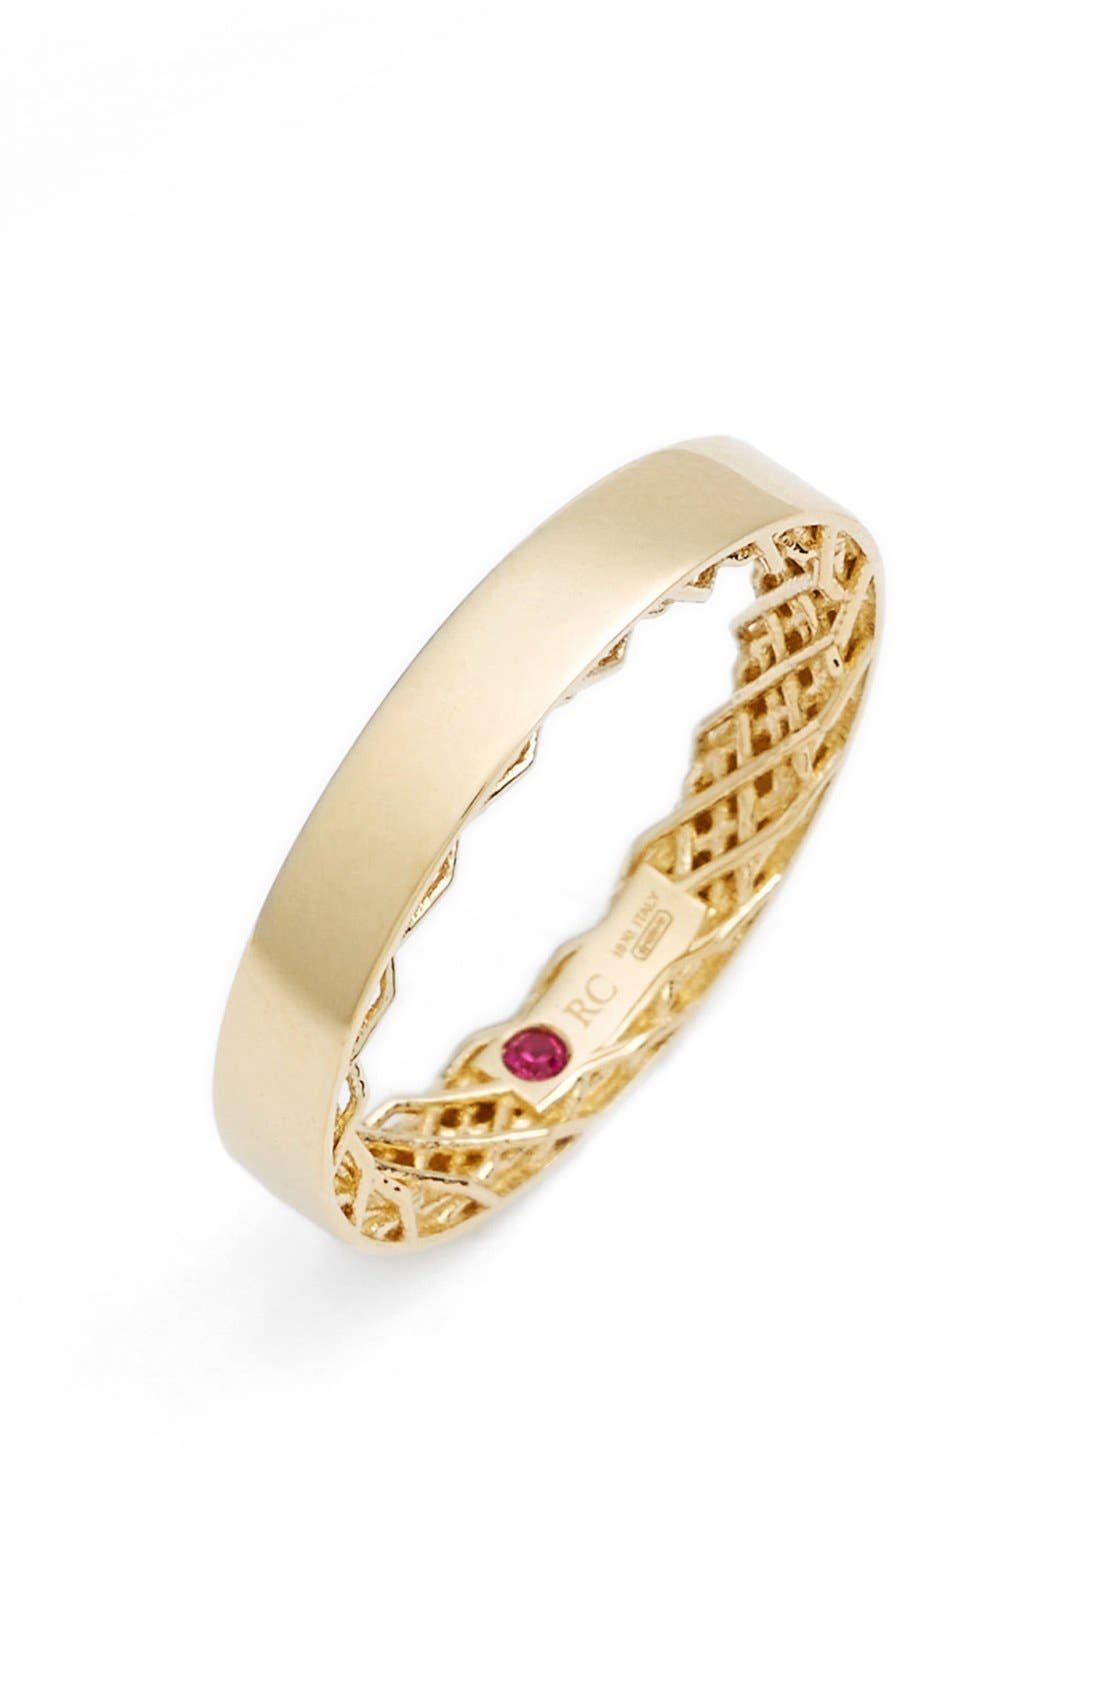 'Symphony - Golden Gate' Band Ring,                             Main thumbnail 1, color,                             YELLOW GOLD